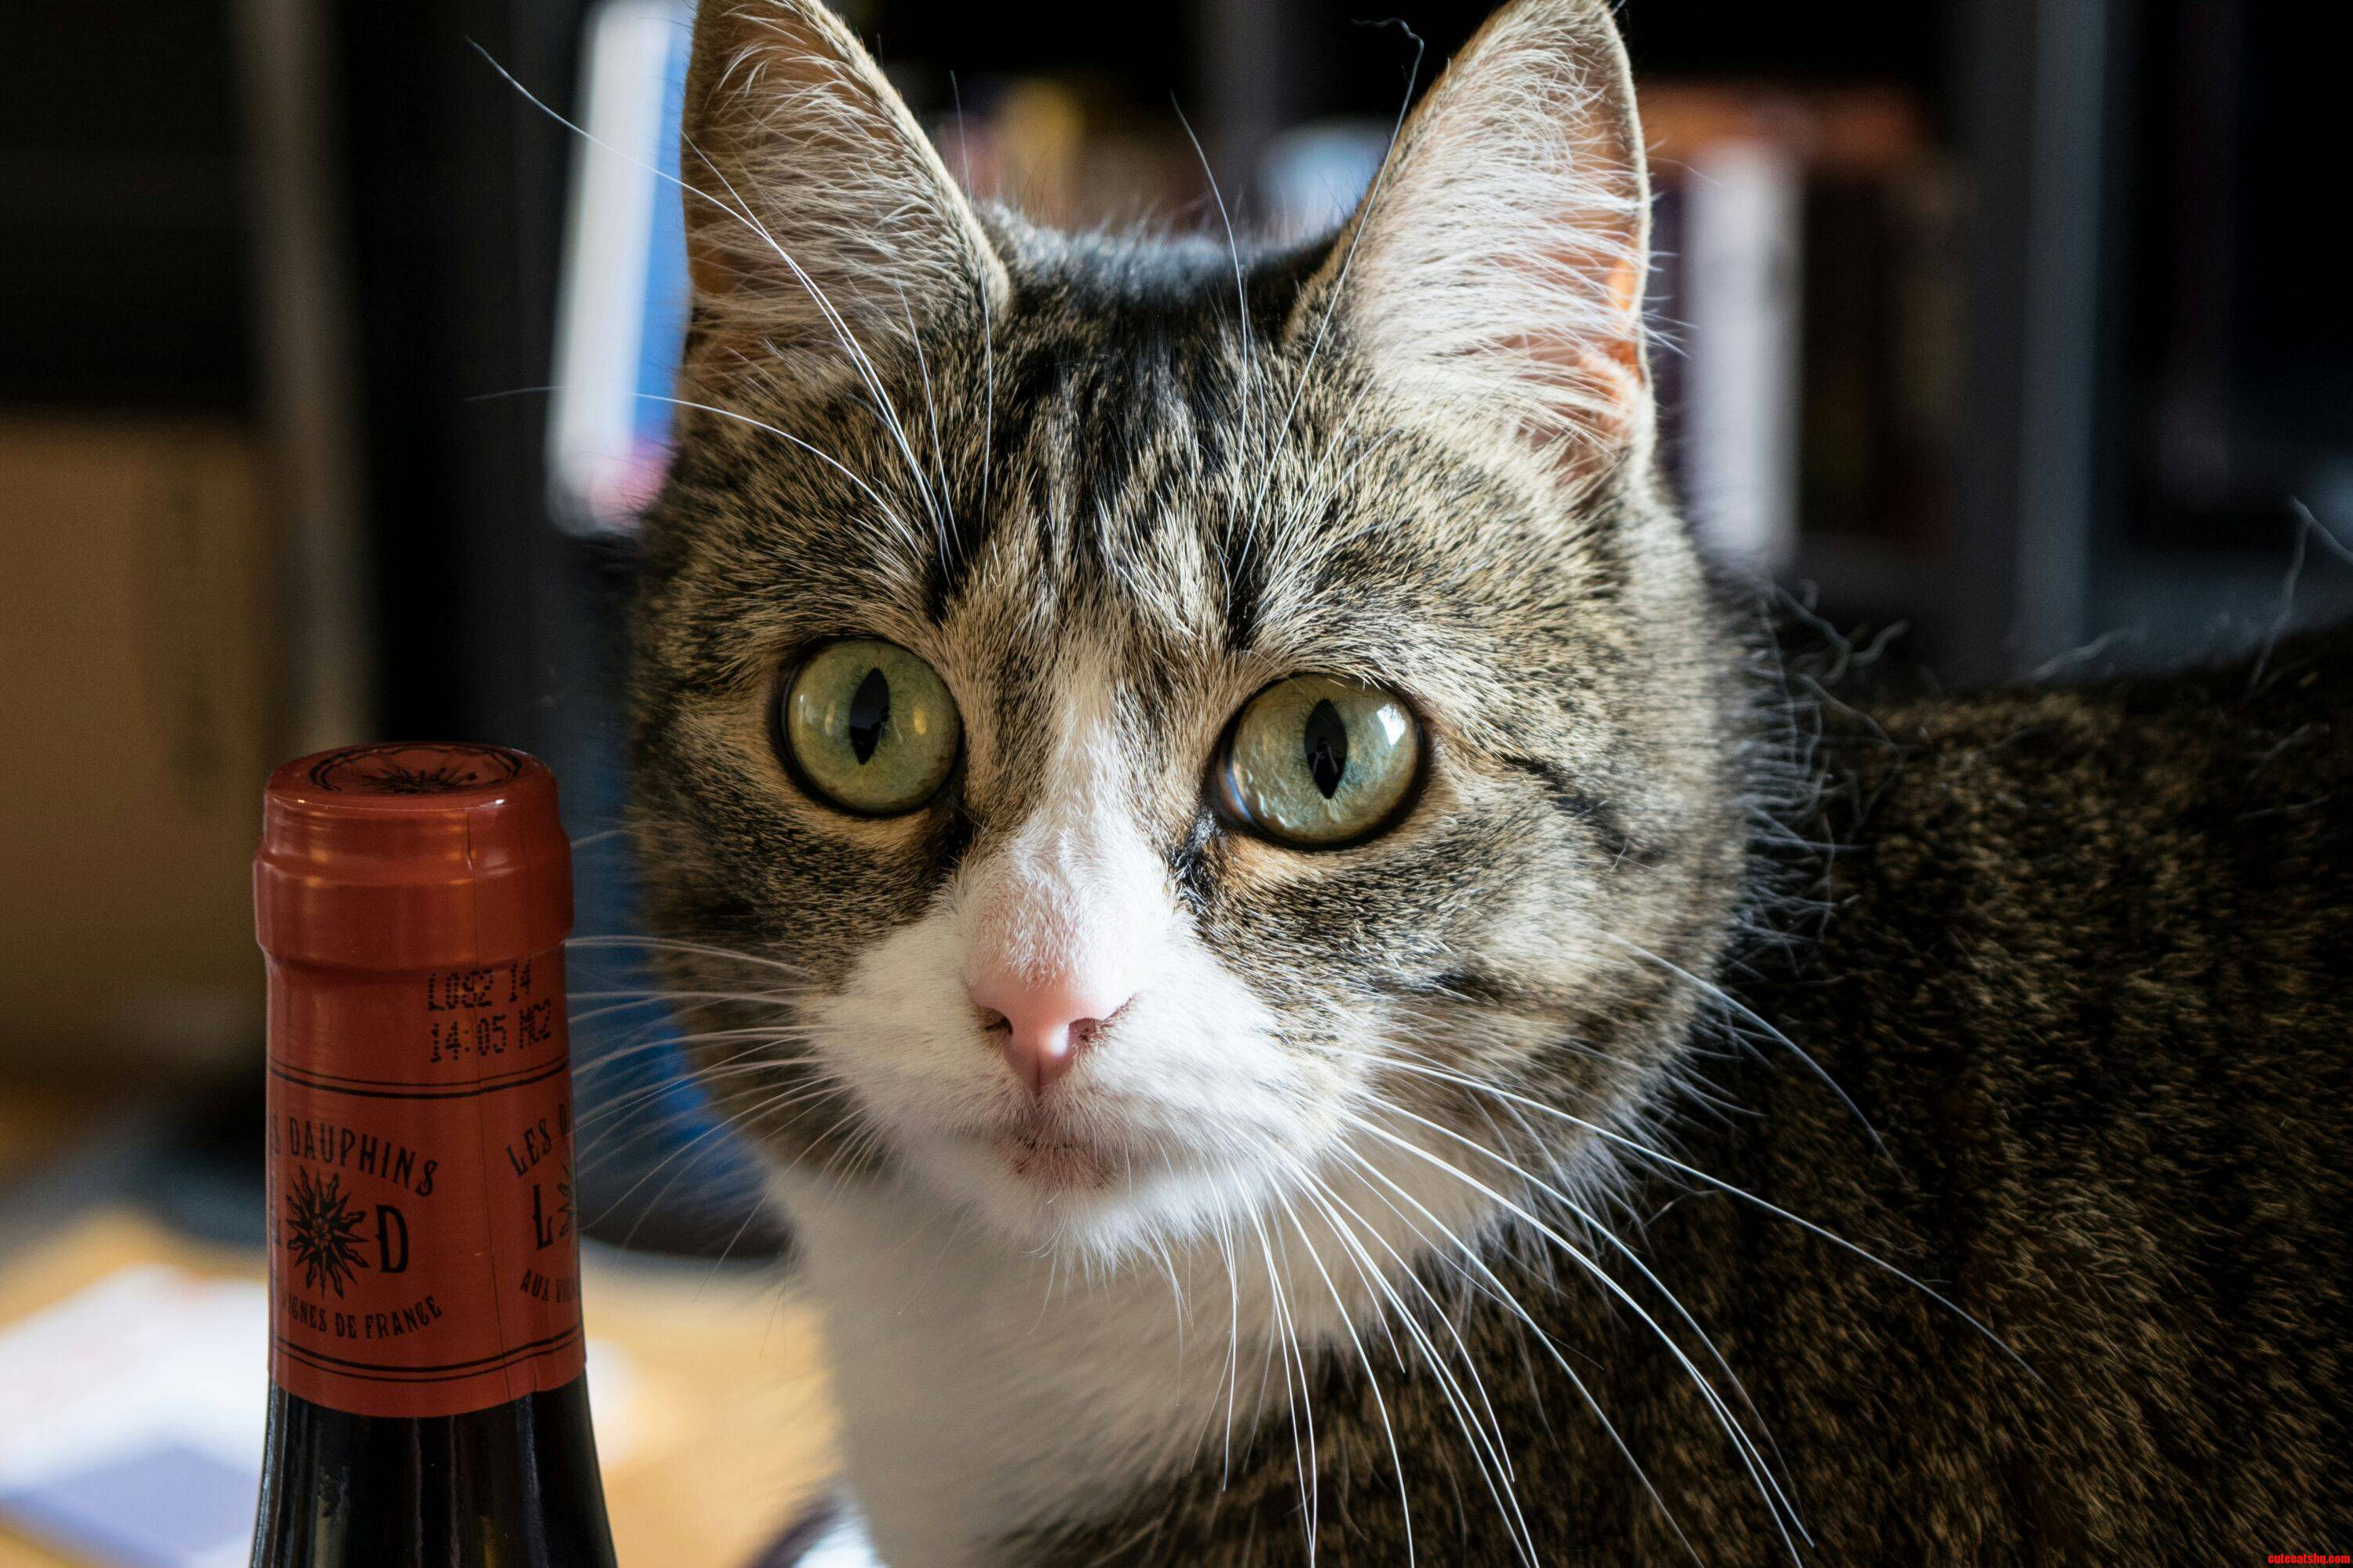 Cat Wonders If Its Time To Open The Bottle Yet